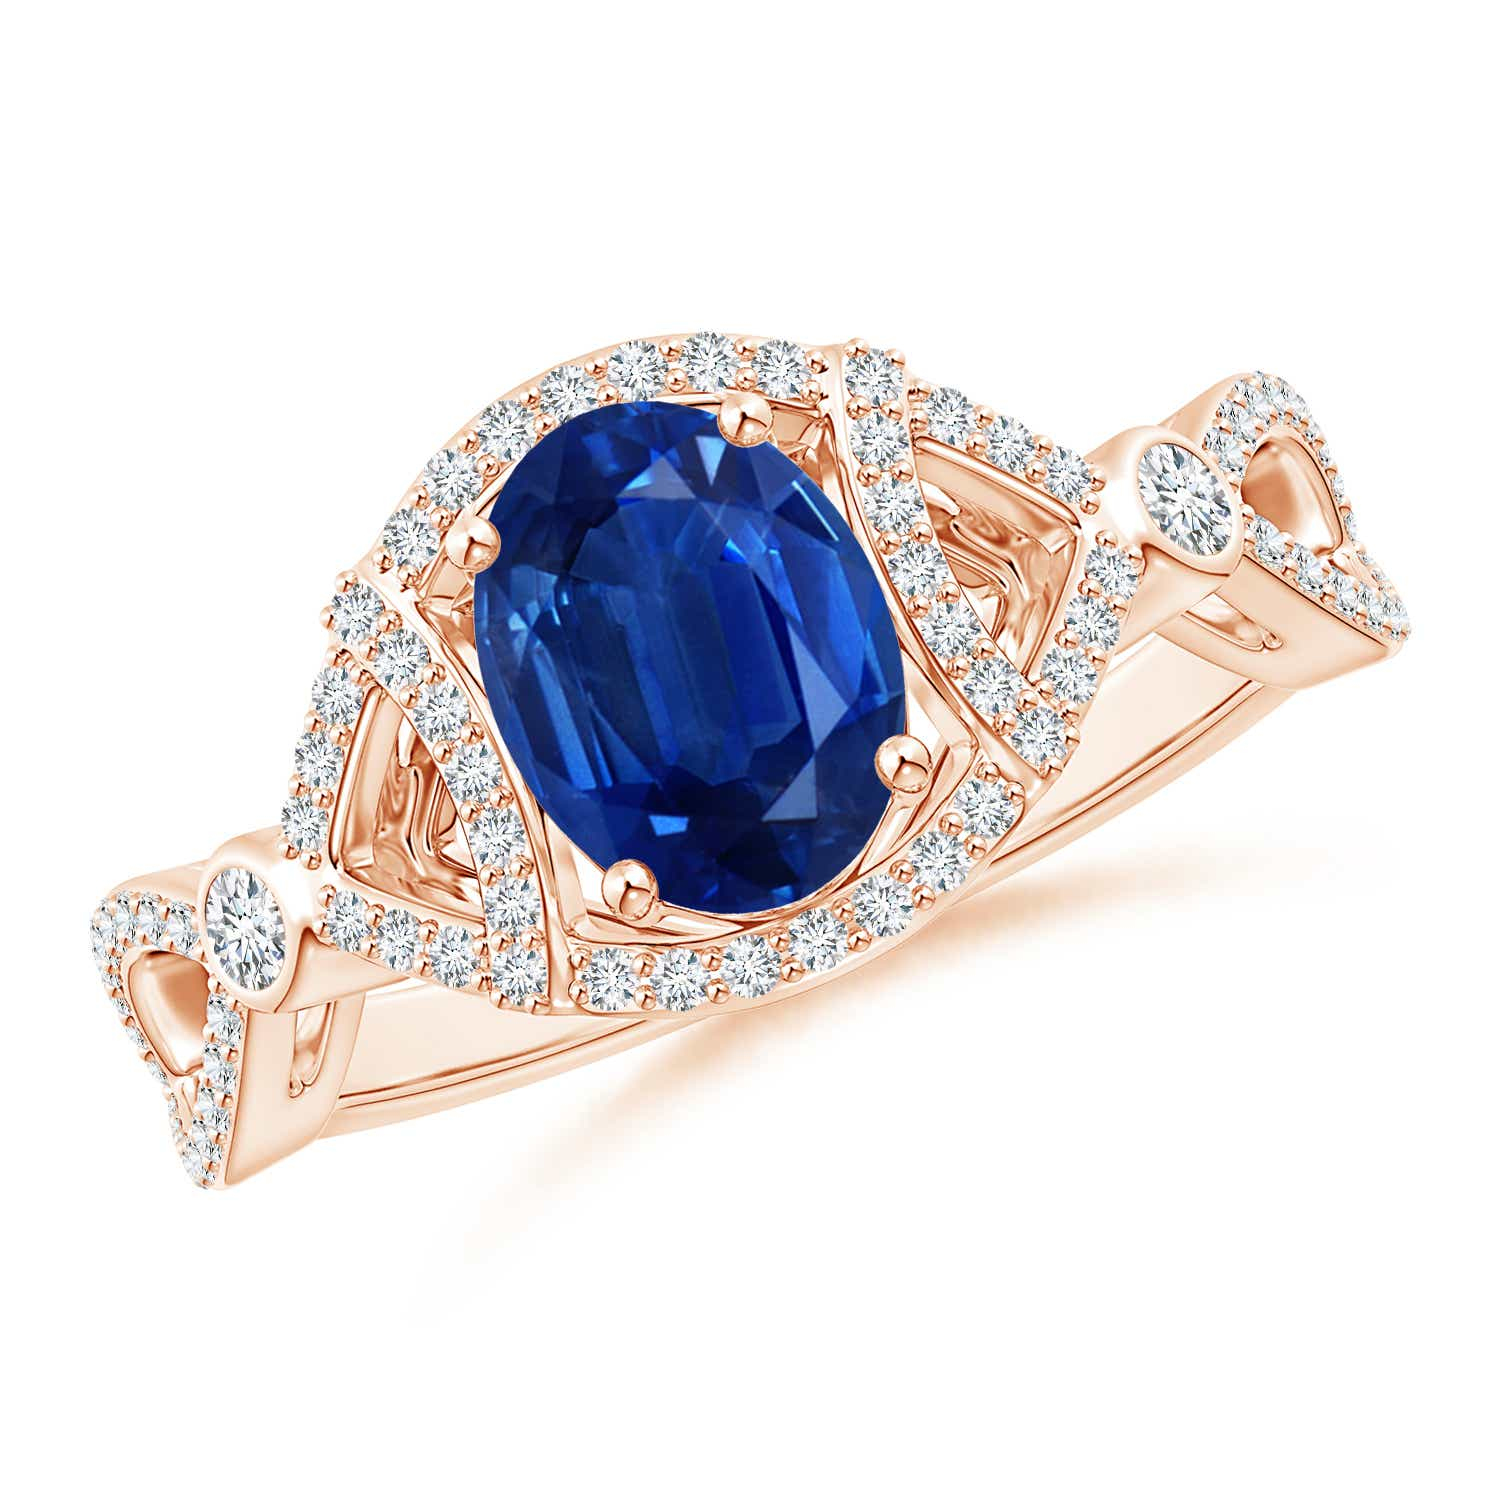 Vintage Style Oval Sapphire Split Shank Engagement Ring - Angara.com